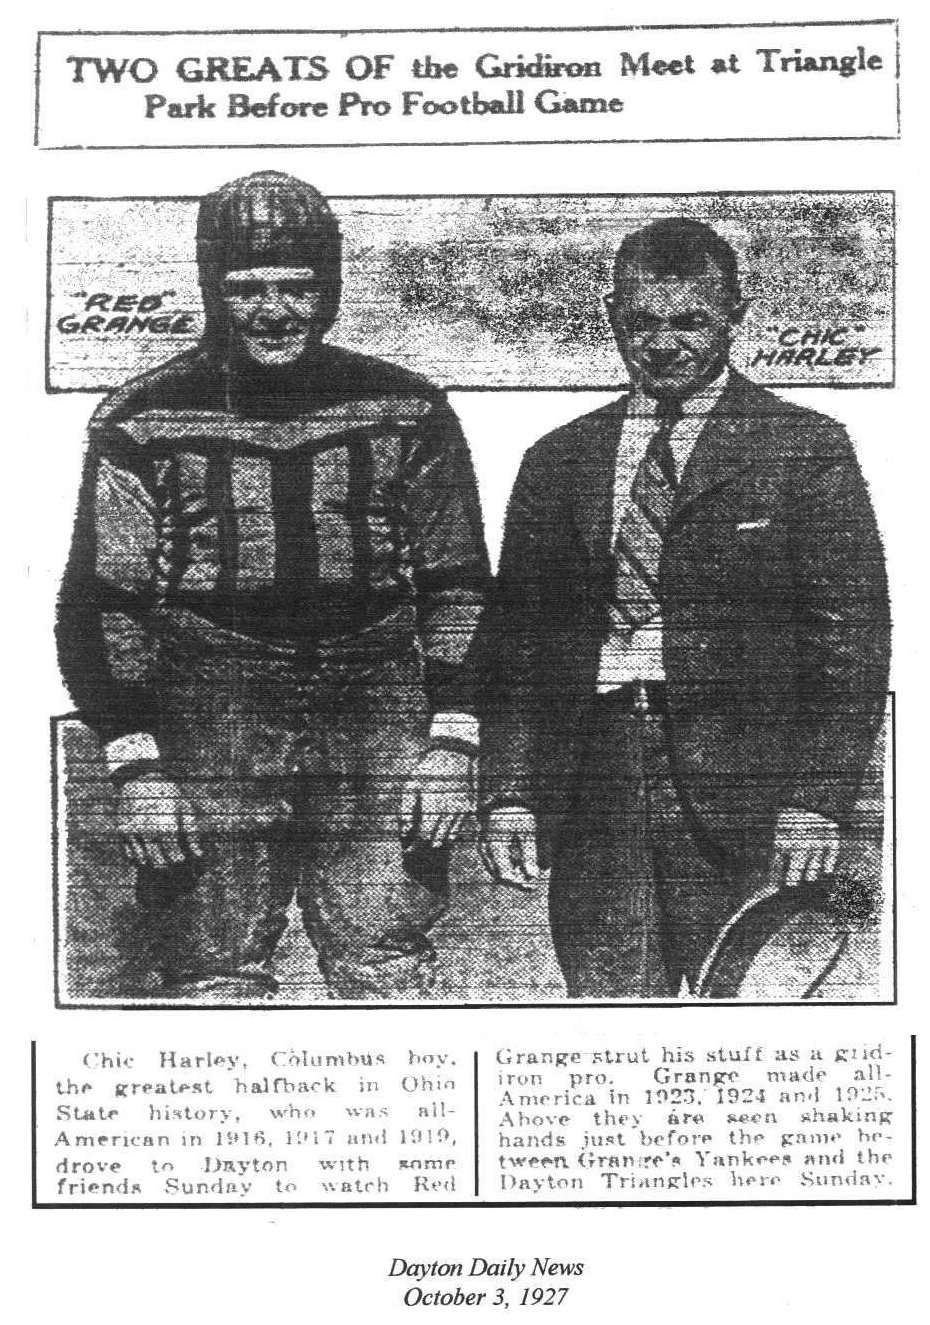 Red Grange and Chic Harley